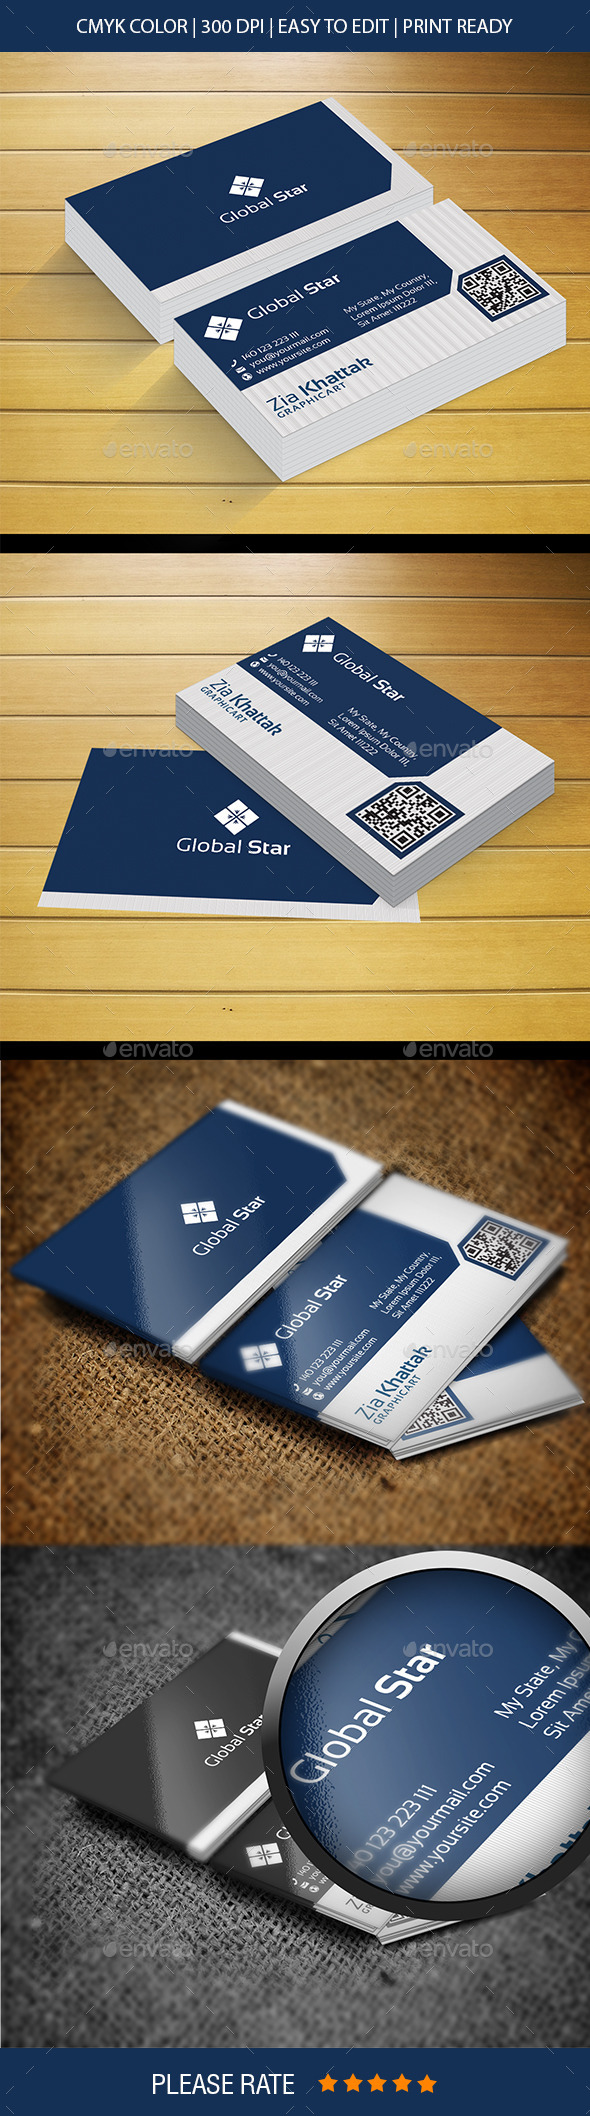 Global Star Vol-IV 2 Business Card - Corporate Business Cards